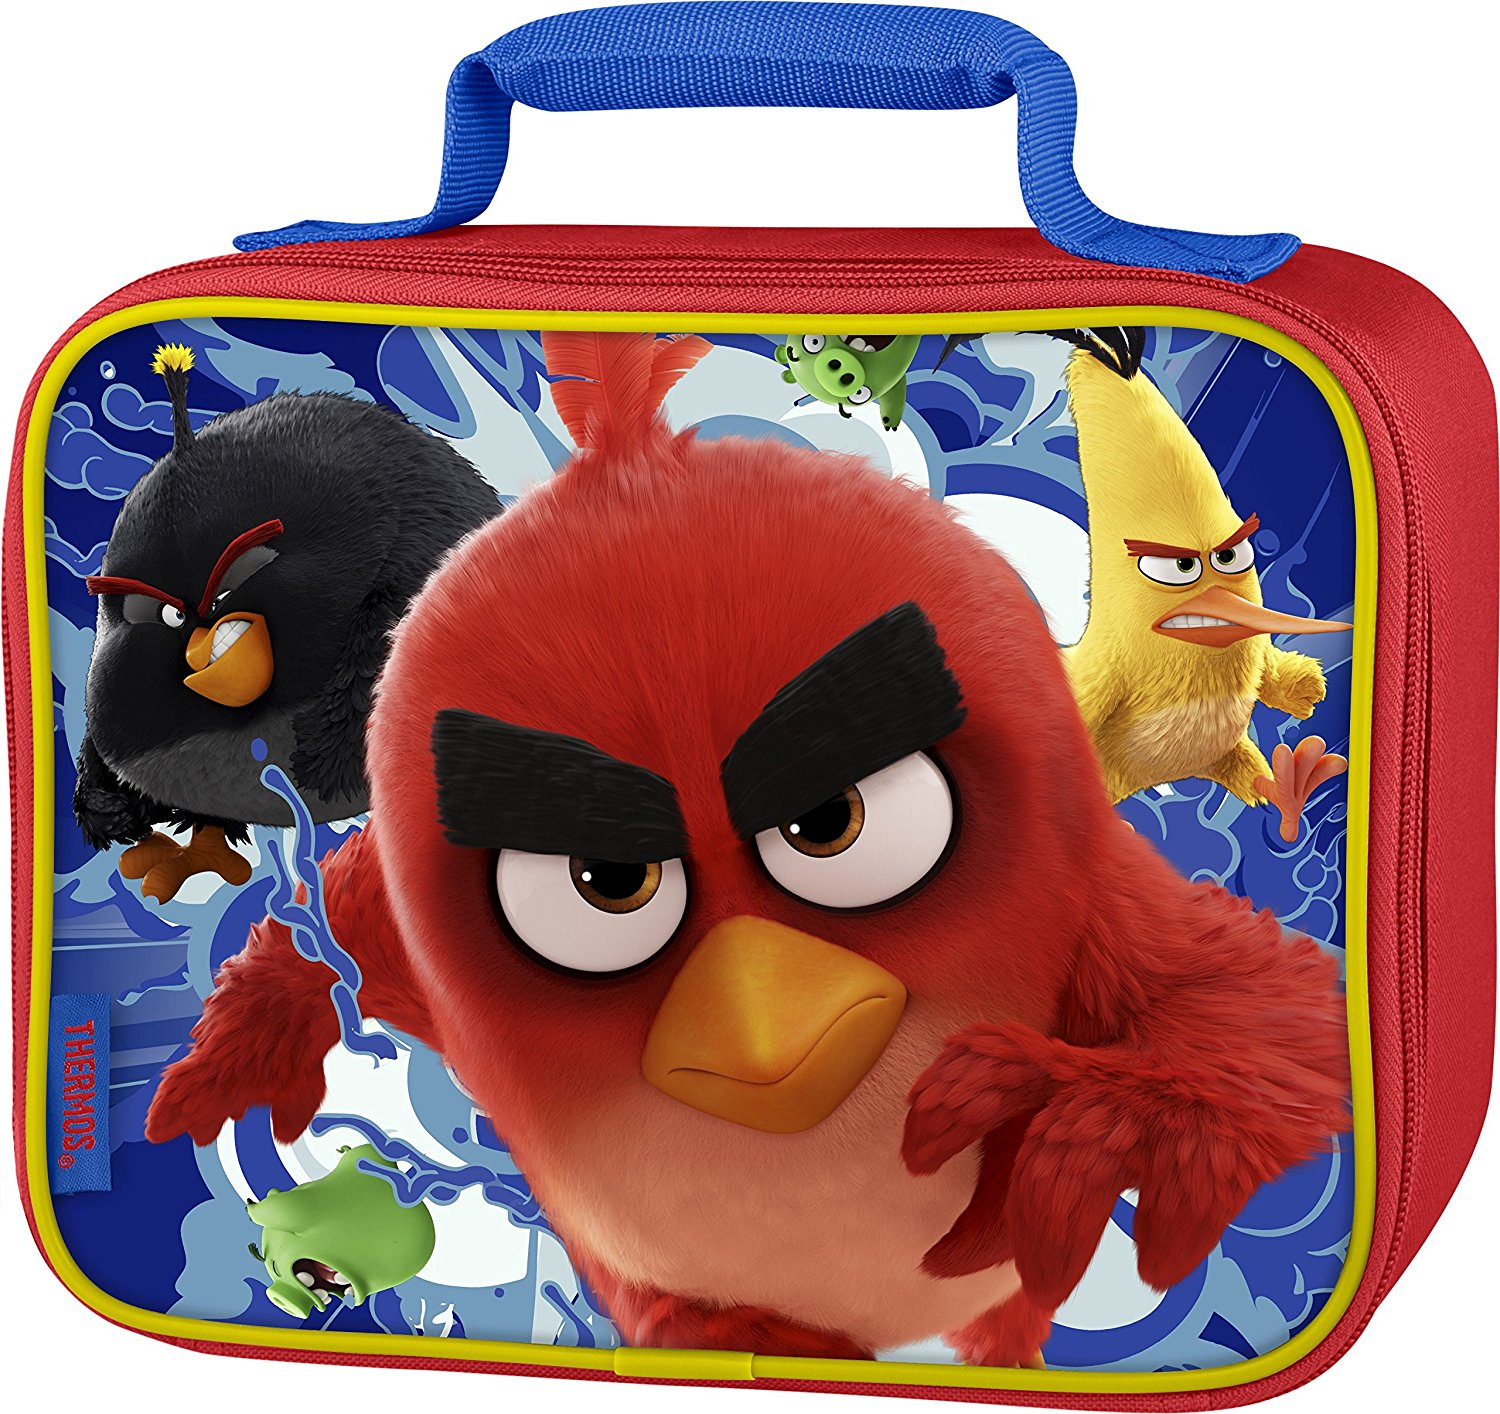 Thermos Lunch Kit, Angry Birds Soft Lunch Box Insulated Kids Lunchbox